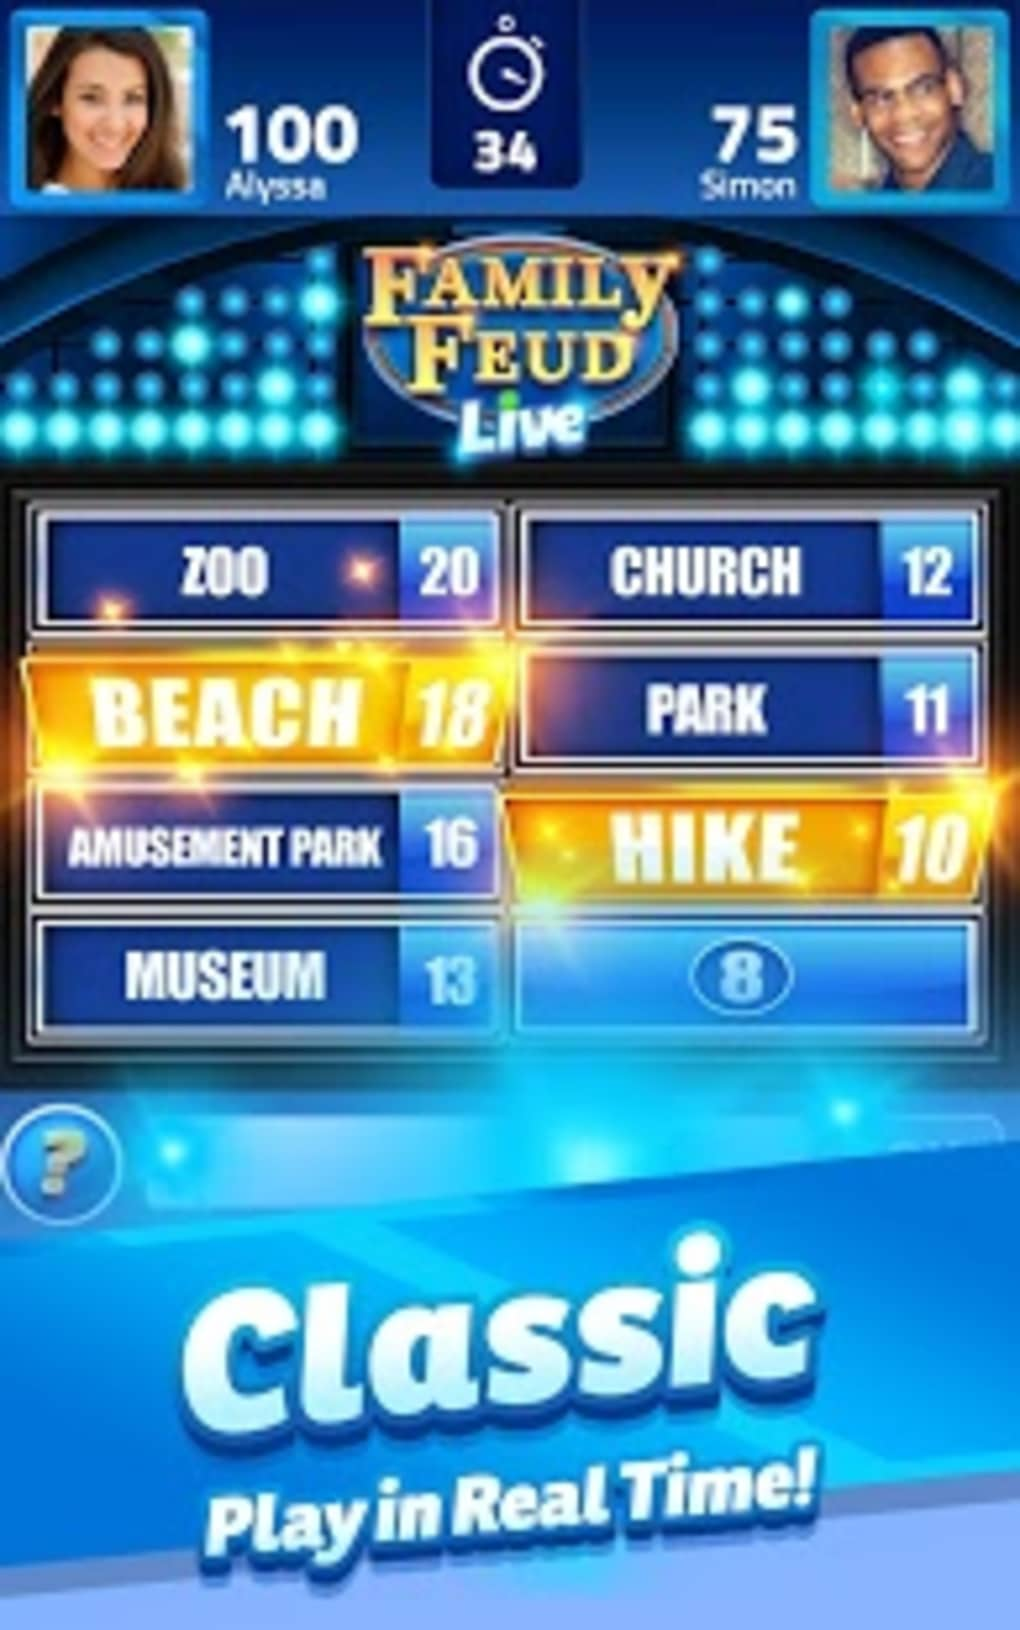 Family Feud Live for Android - Download